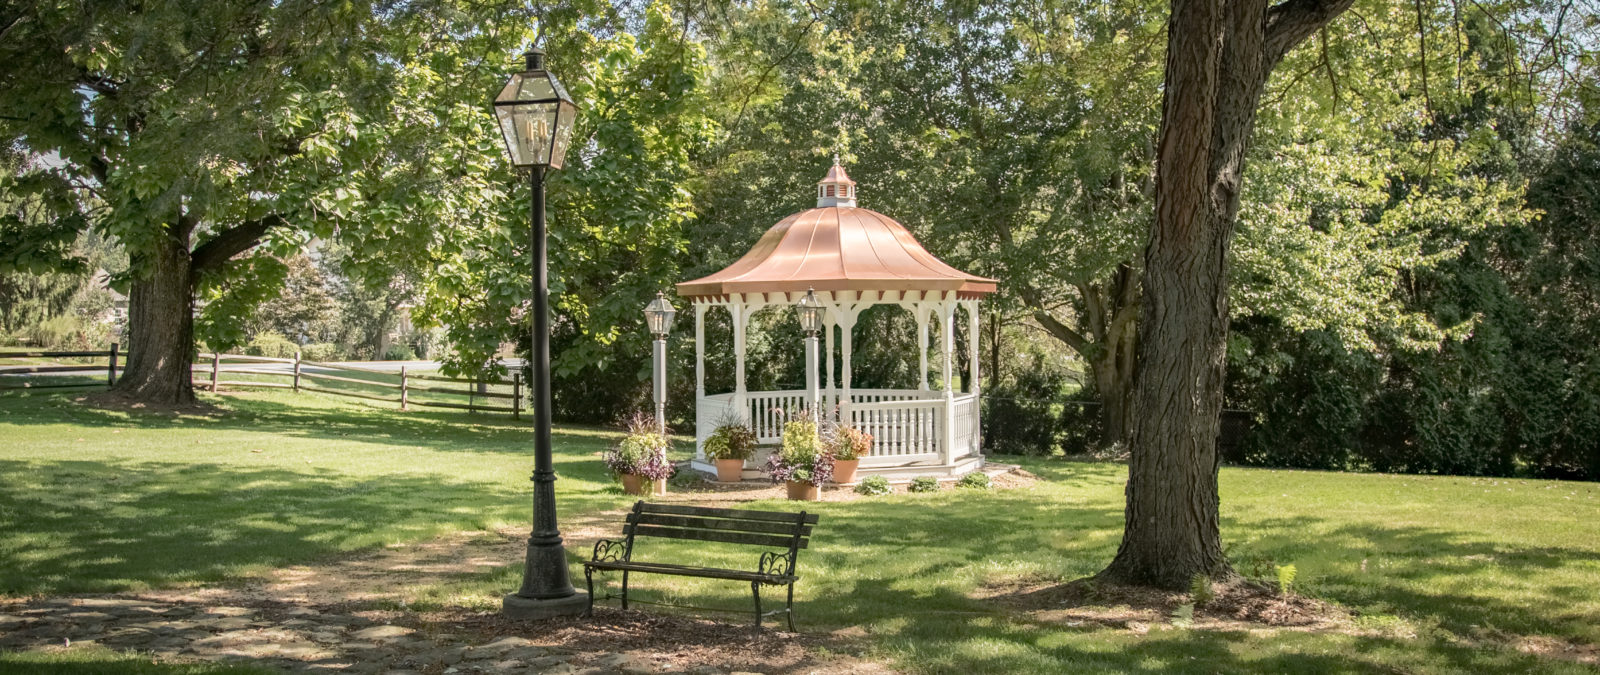 12' bell copper roof octagon gazebo